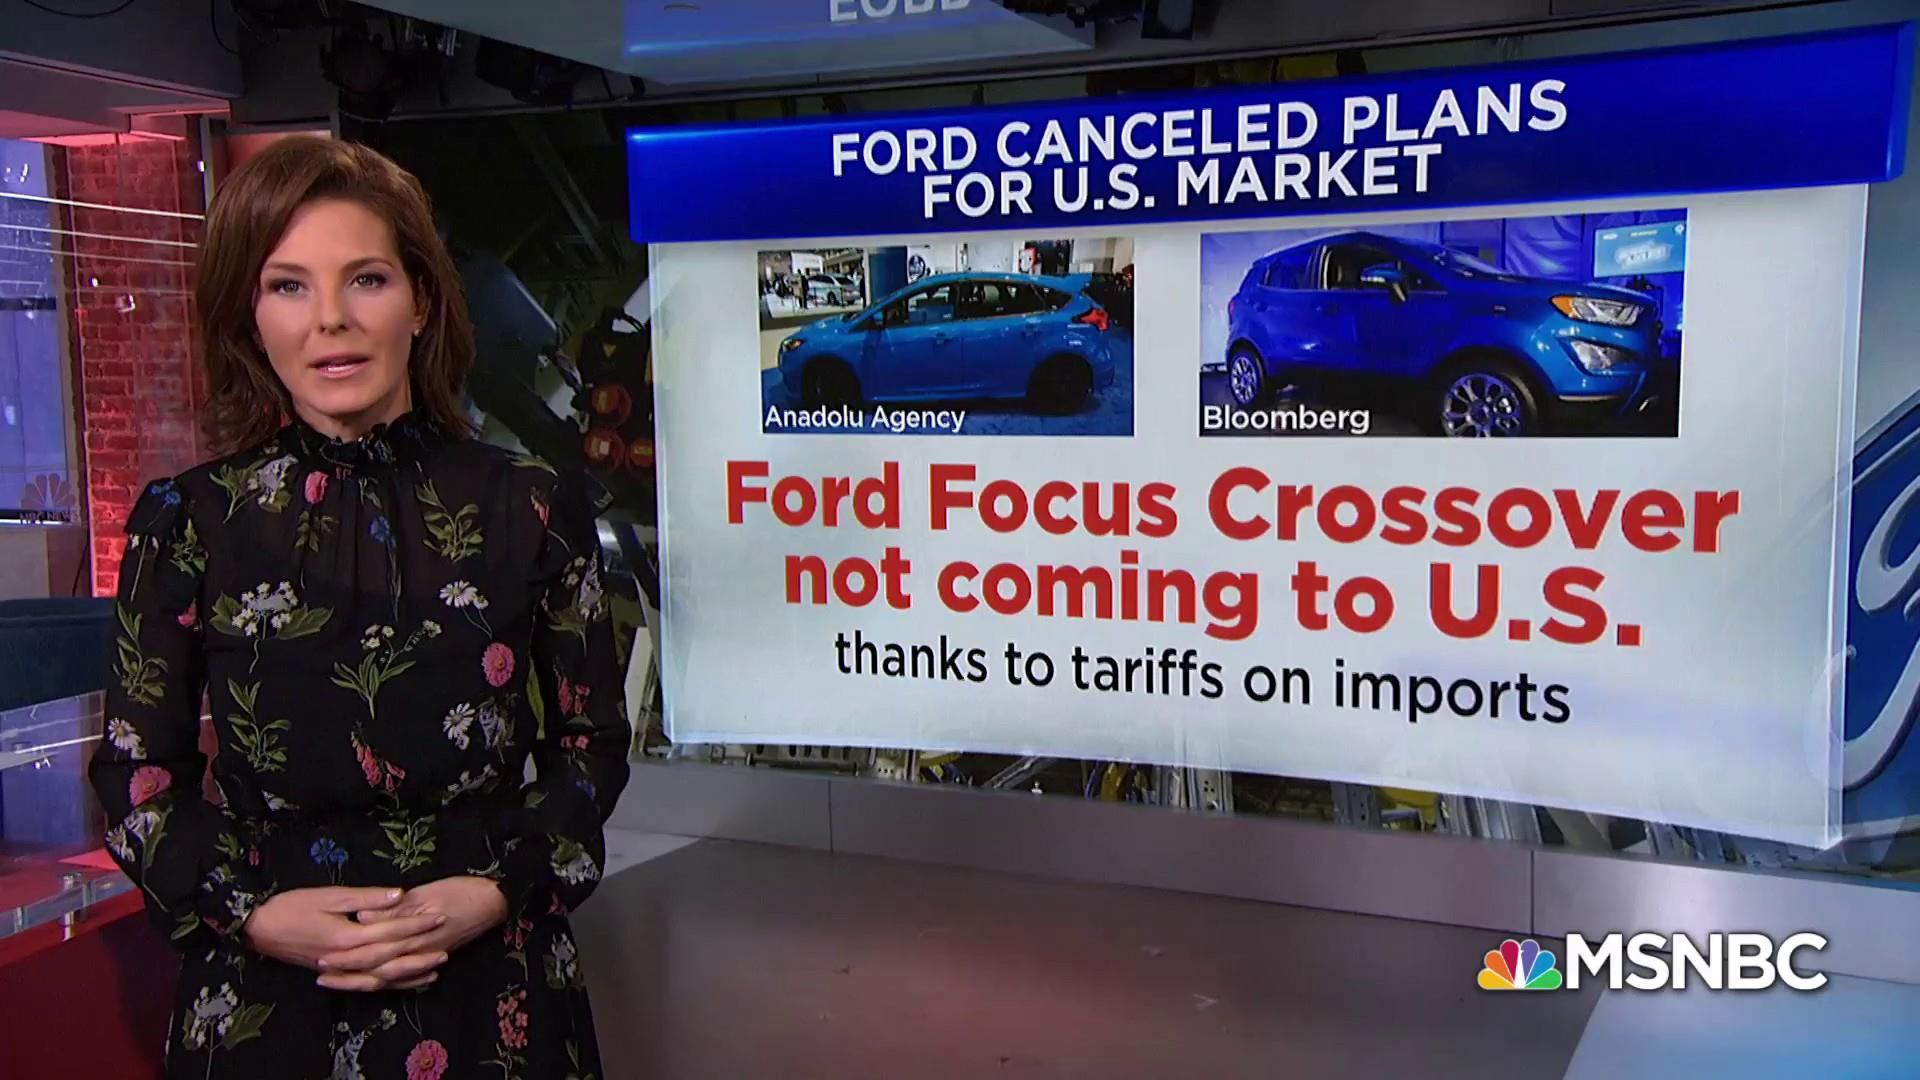 President Trump's trade war has cost Ford Motor Company $1B